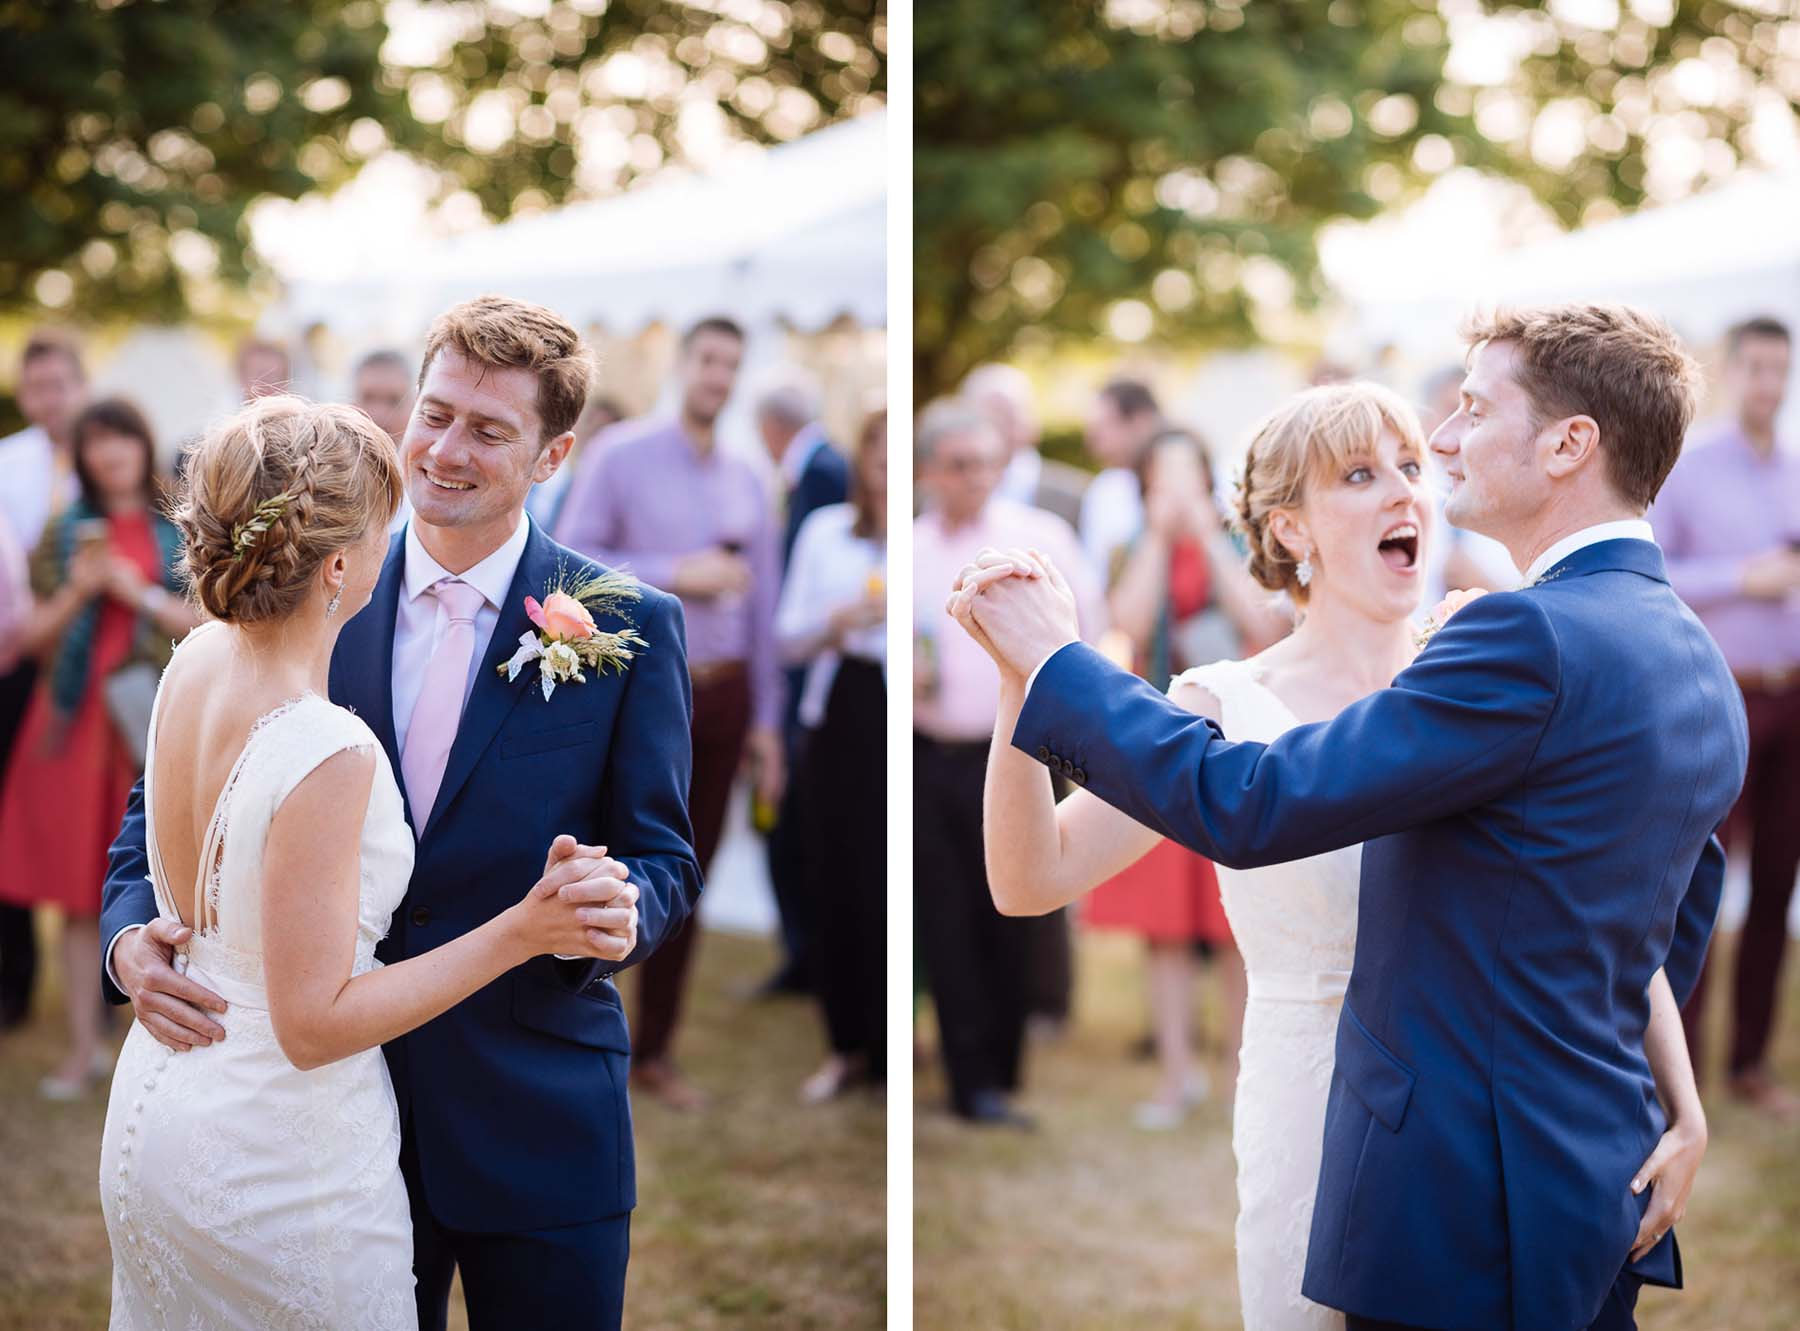 bride-groom-first-dance-at-wedding-outdoors-rural-style-together-dorset-38